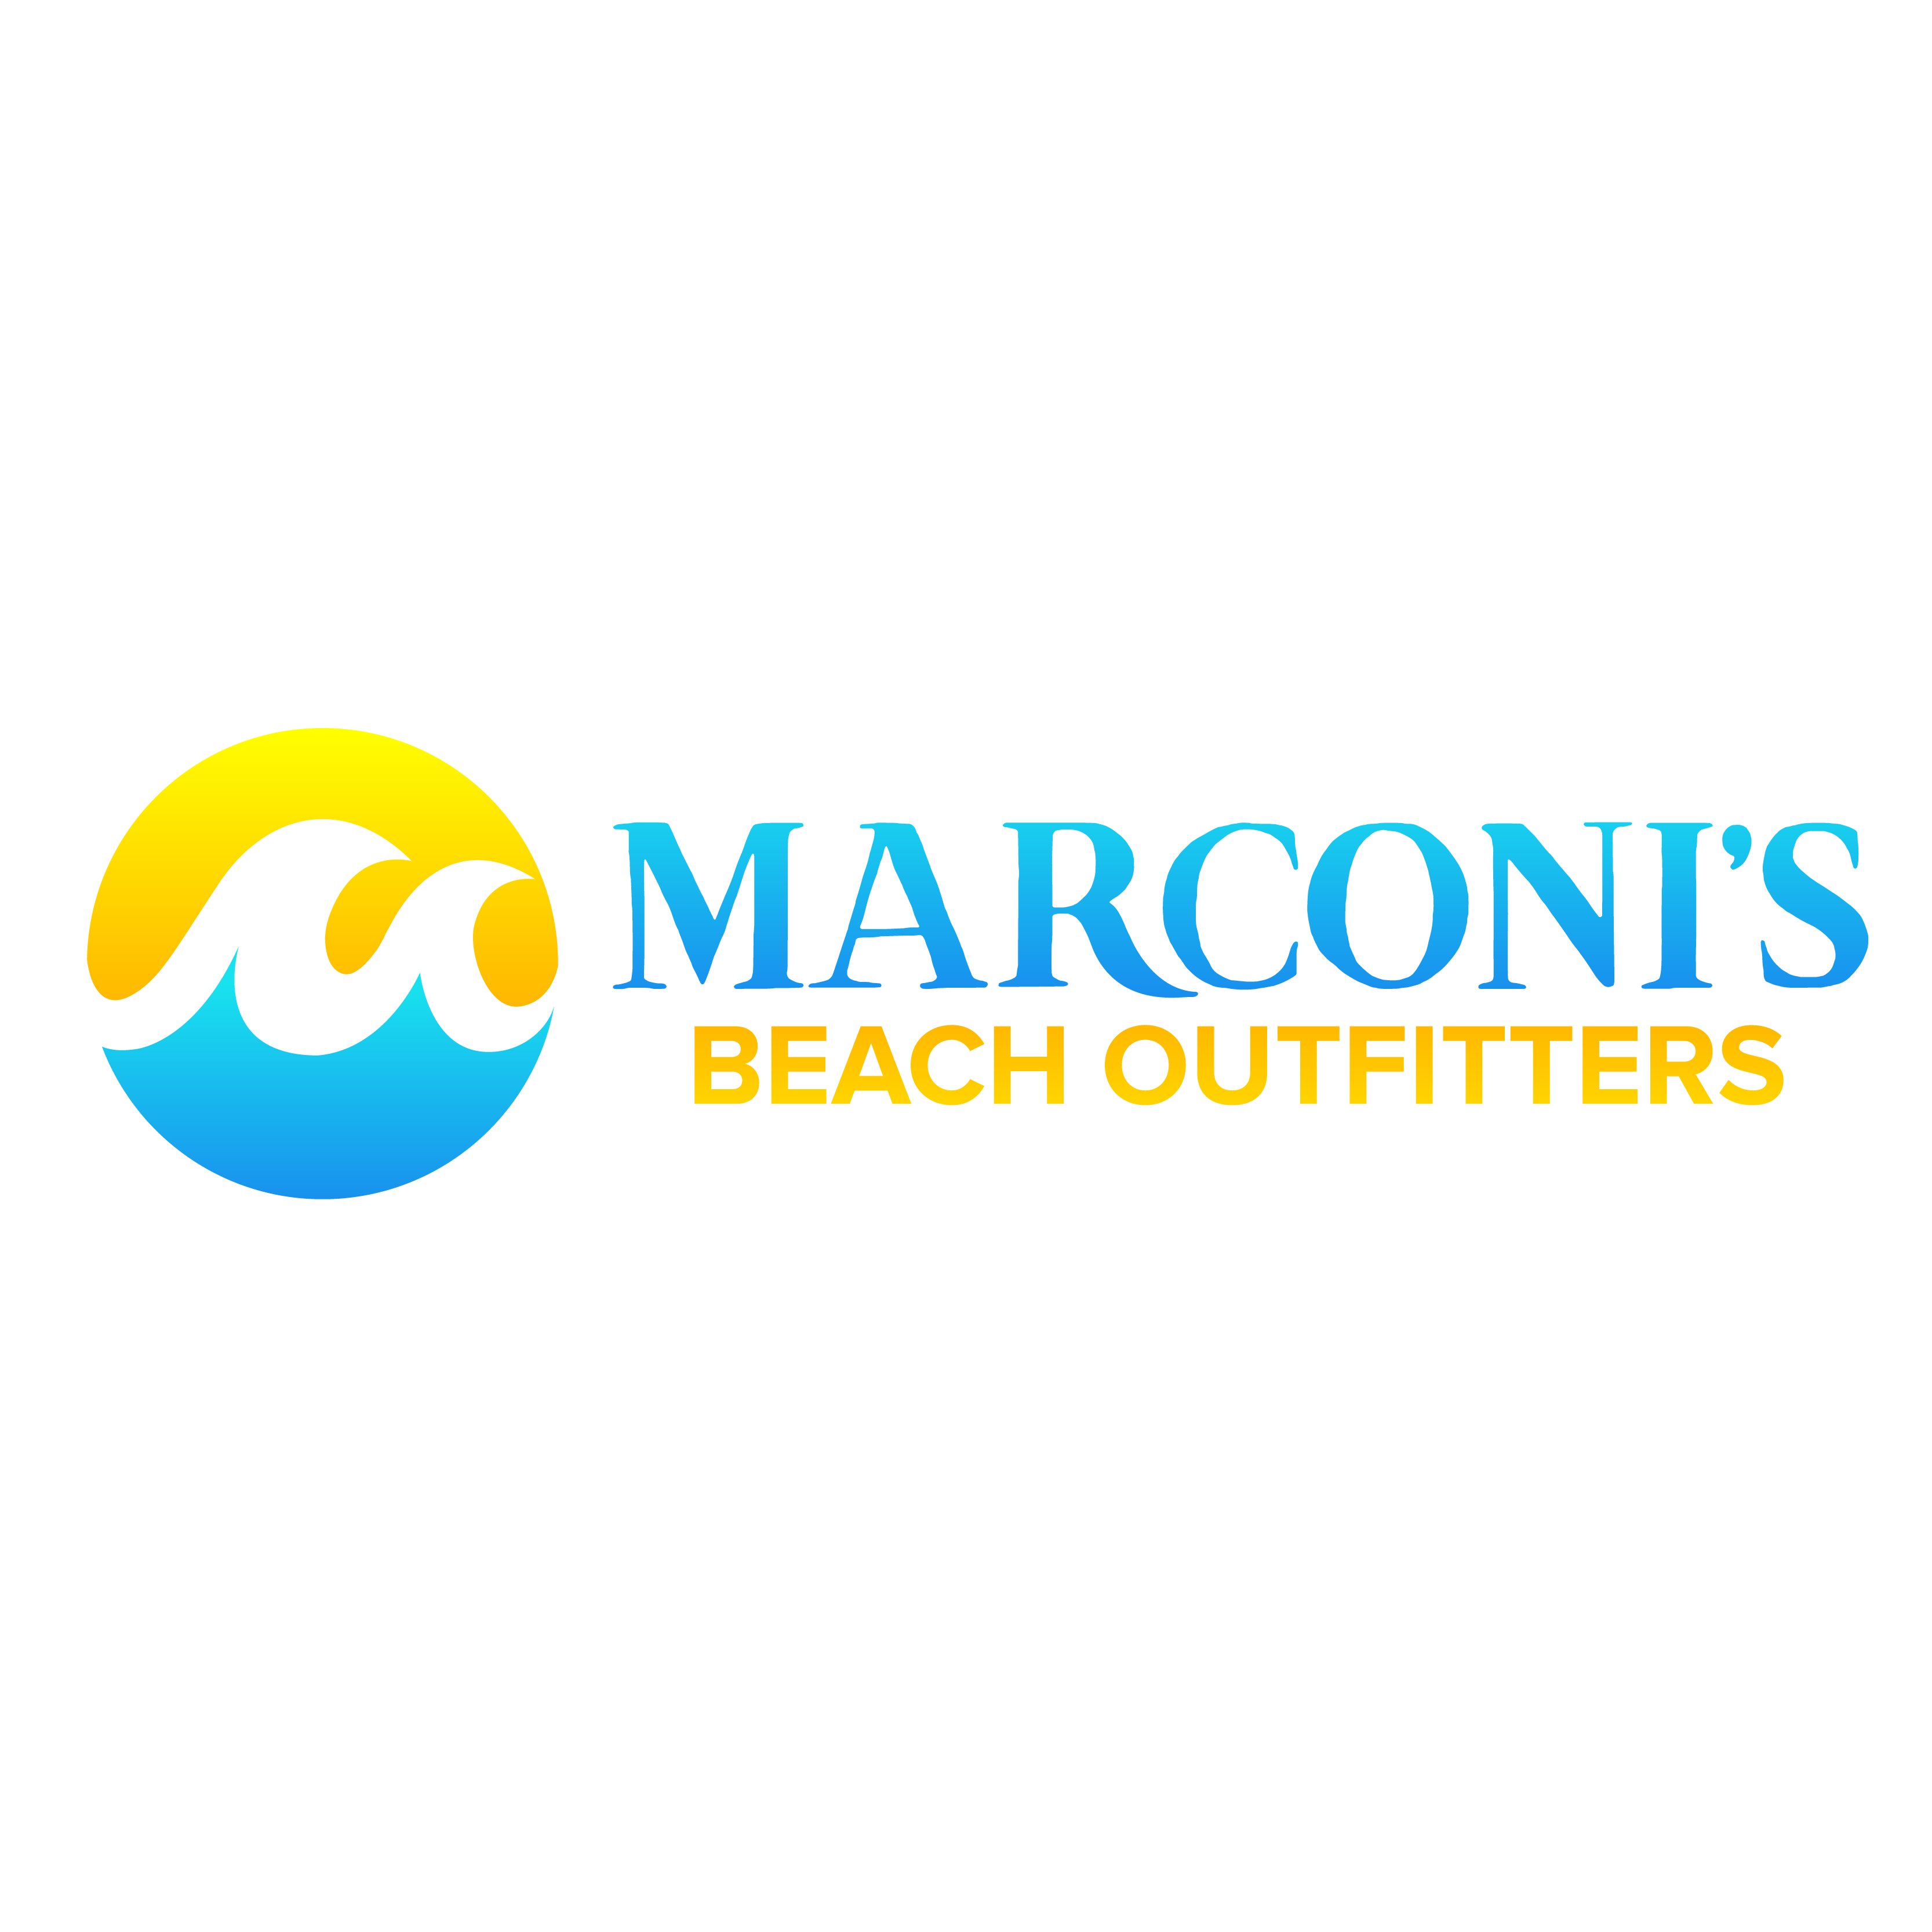 Marconis Beach Outfitters Beach Shop Weather Reports